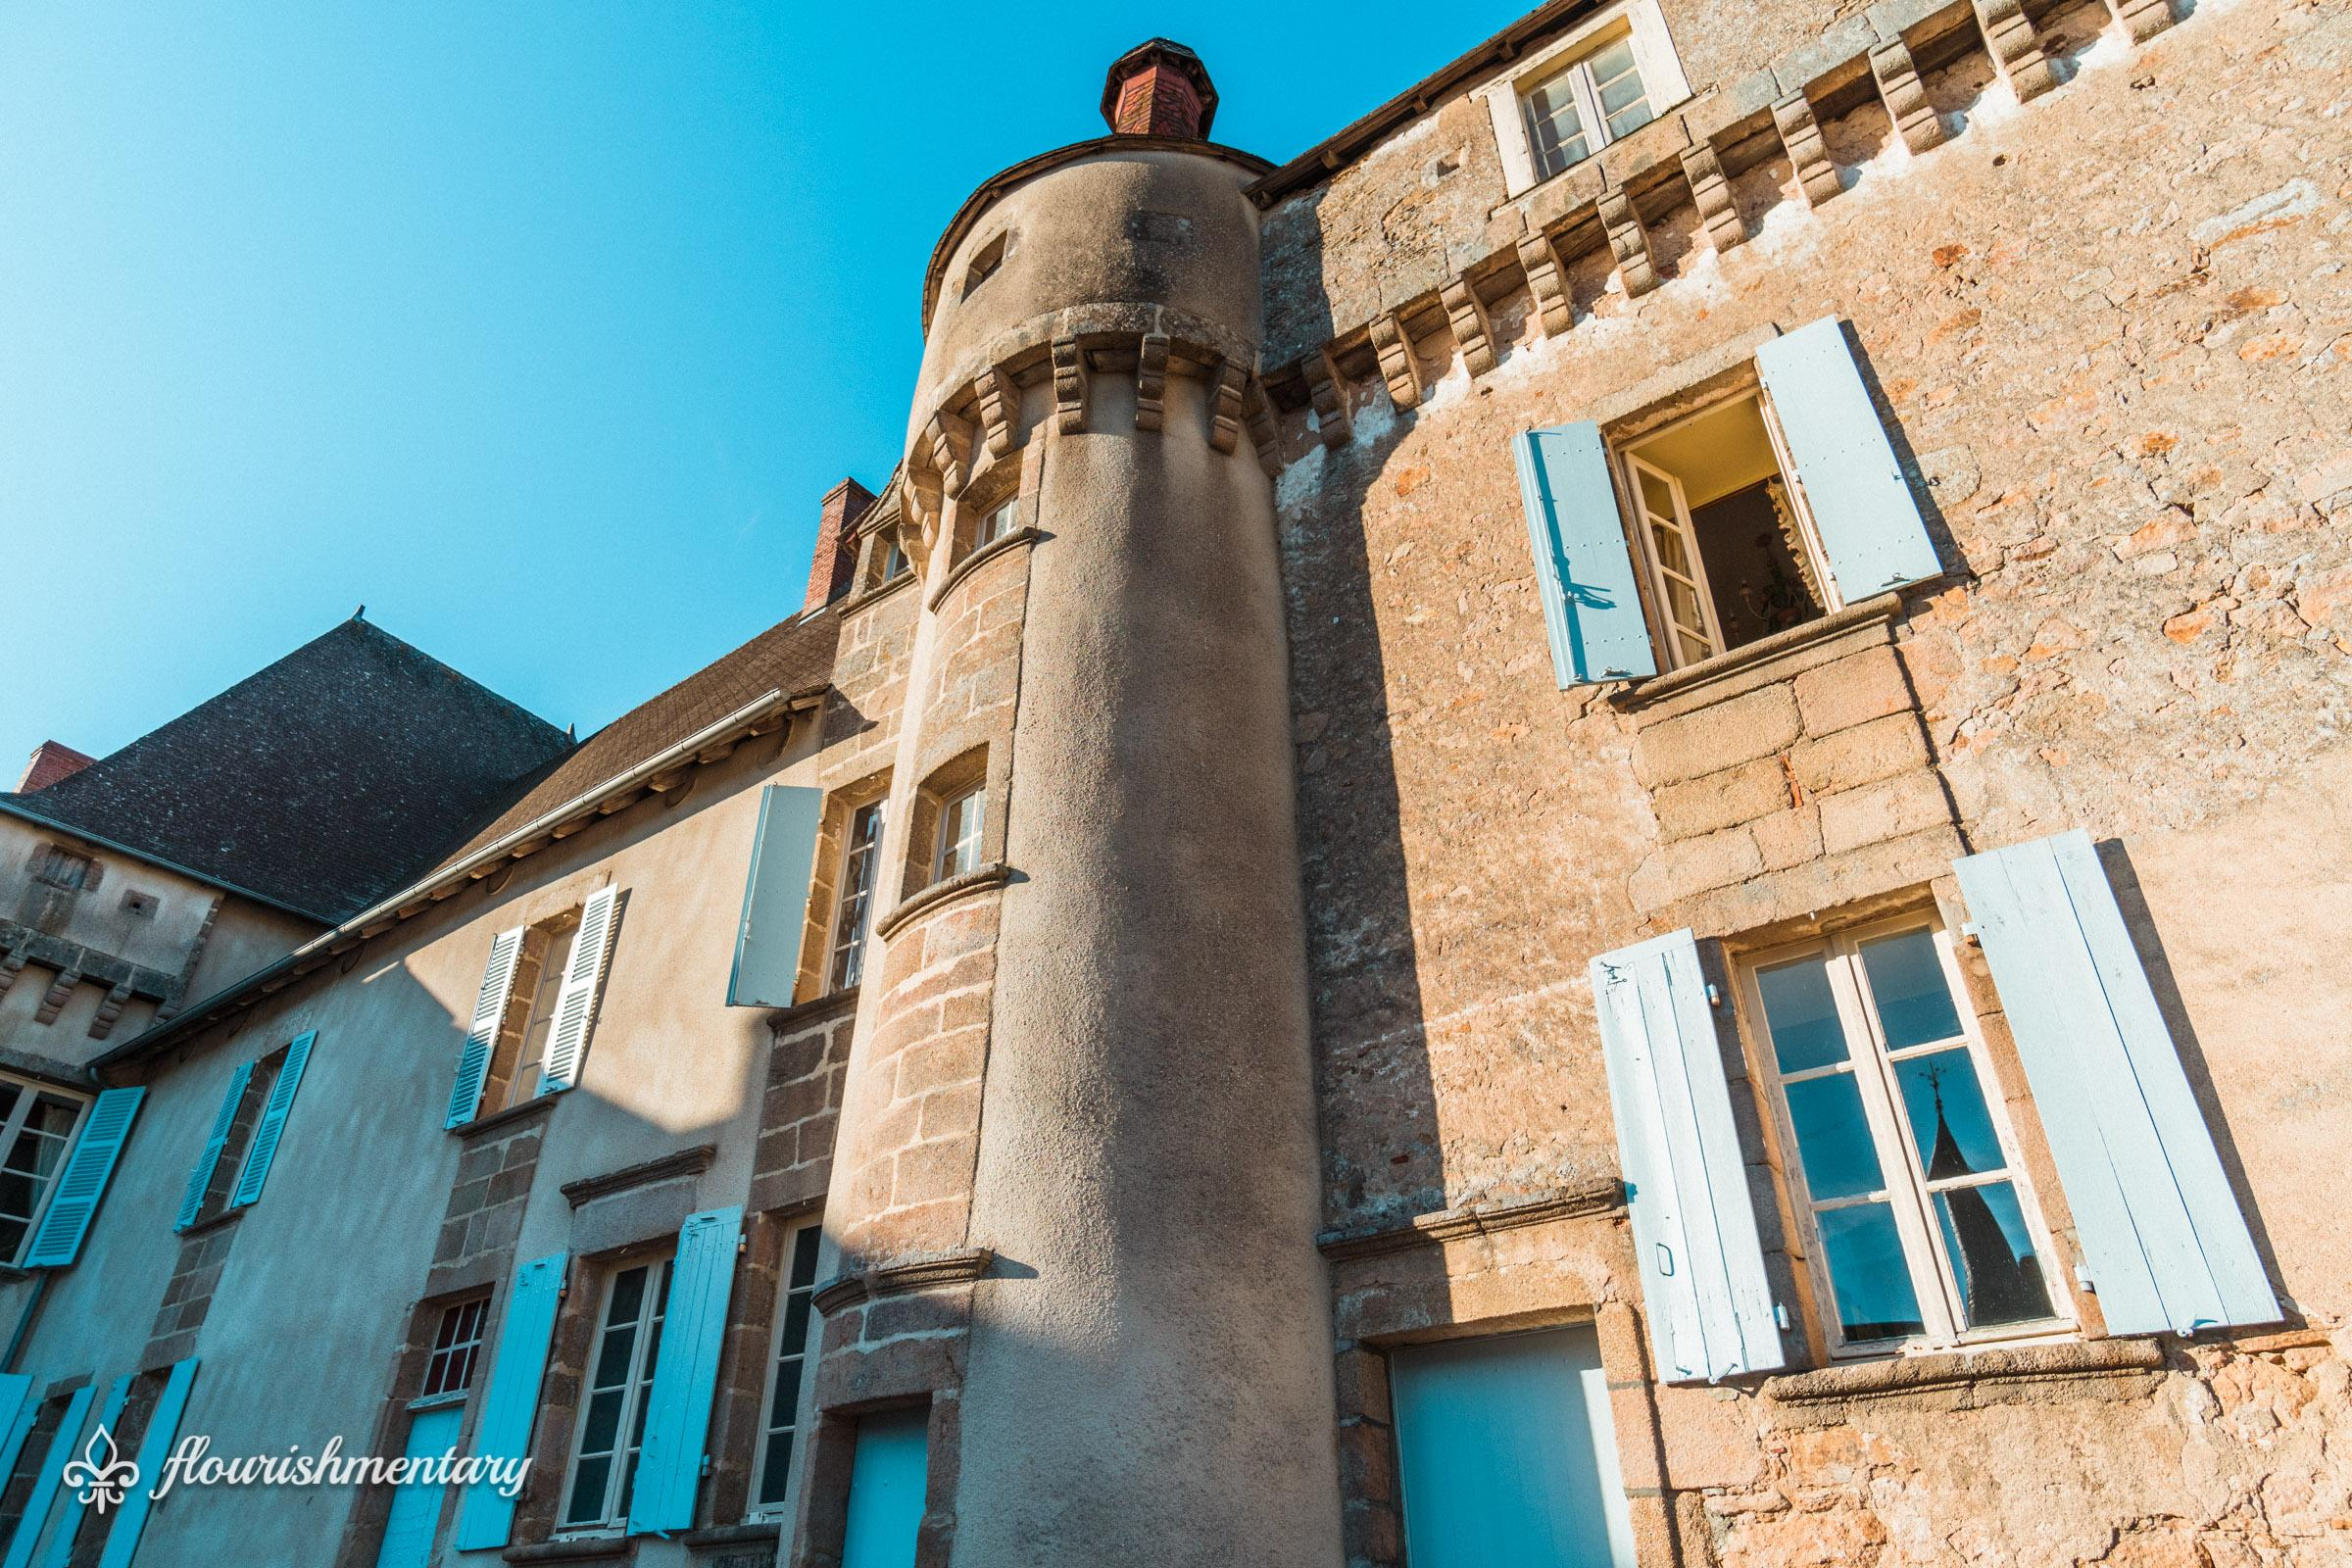 the oldest wing of chateau de lalande fortress like